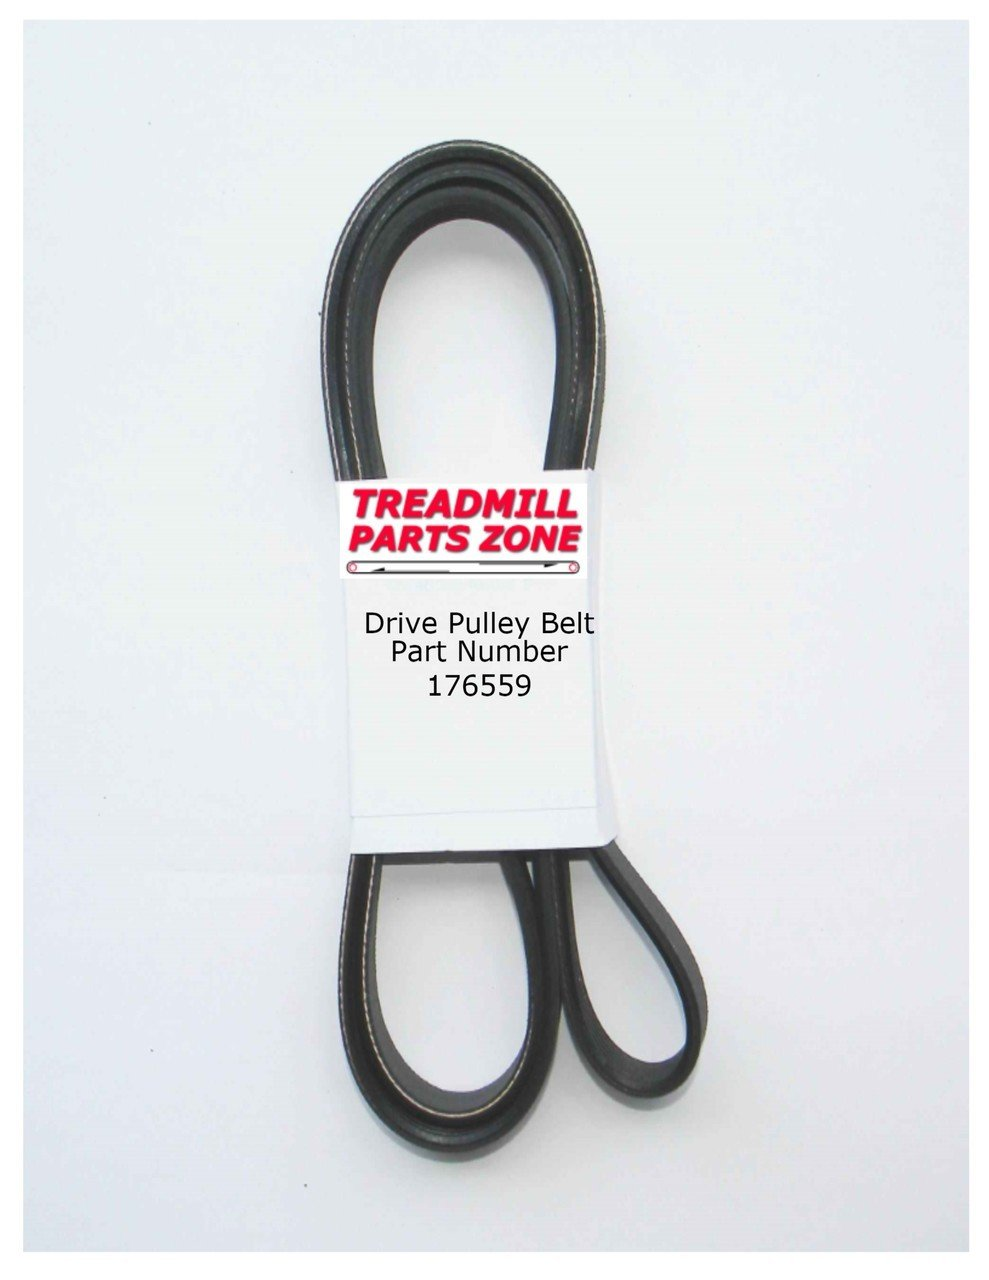 TreadmillPartsZone Sears Pro Form Model 218332 460 R Bike Drive Pulley Belt Part 176559